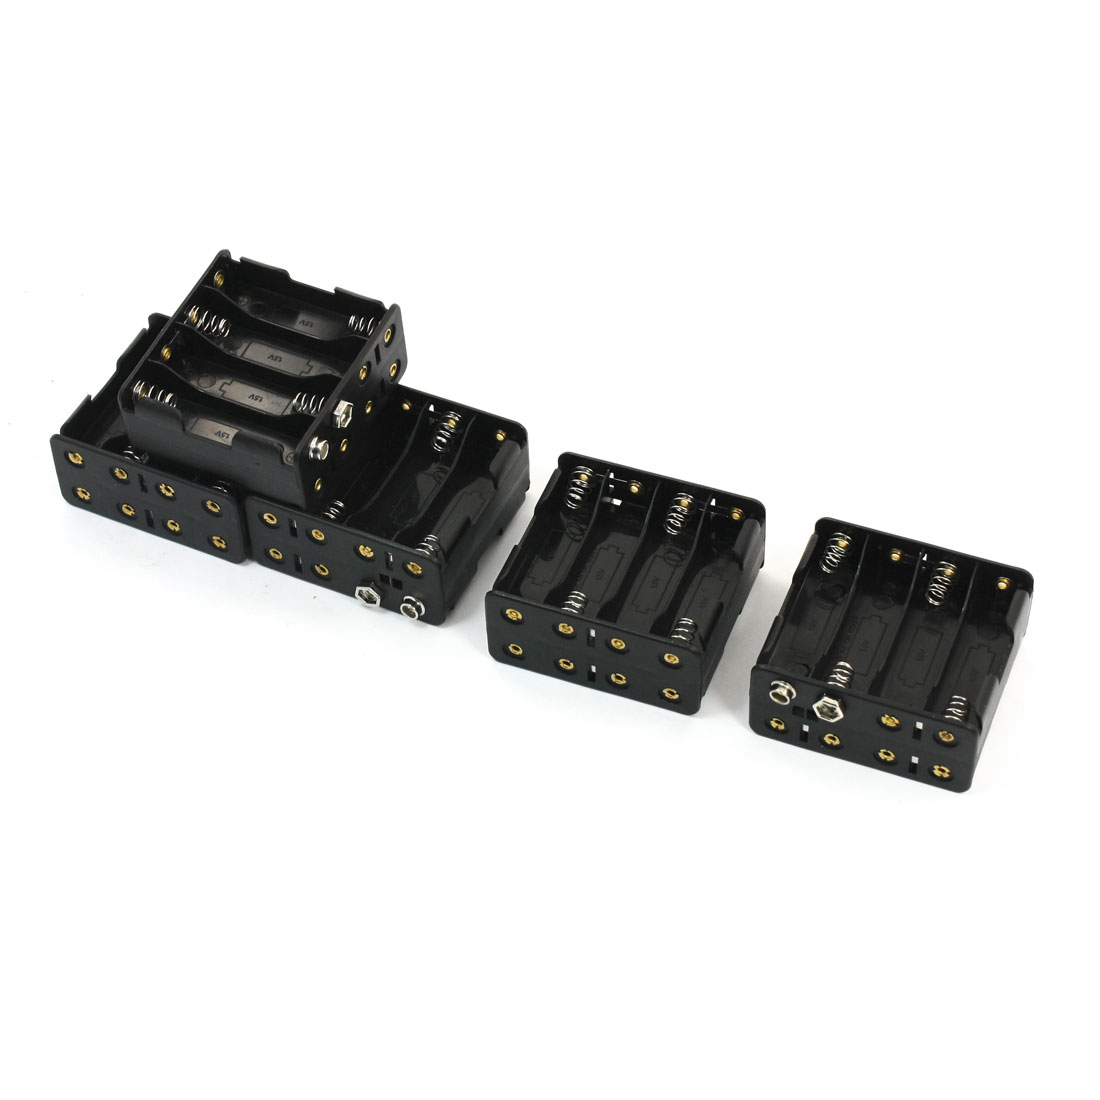 5 PCS Flat Tip Spring Loaded Two Sides Plastic 8 x 1.5V AA Batteries Holder Case Cell Box w 9V Battery Clip